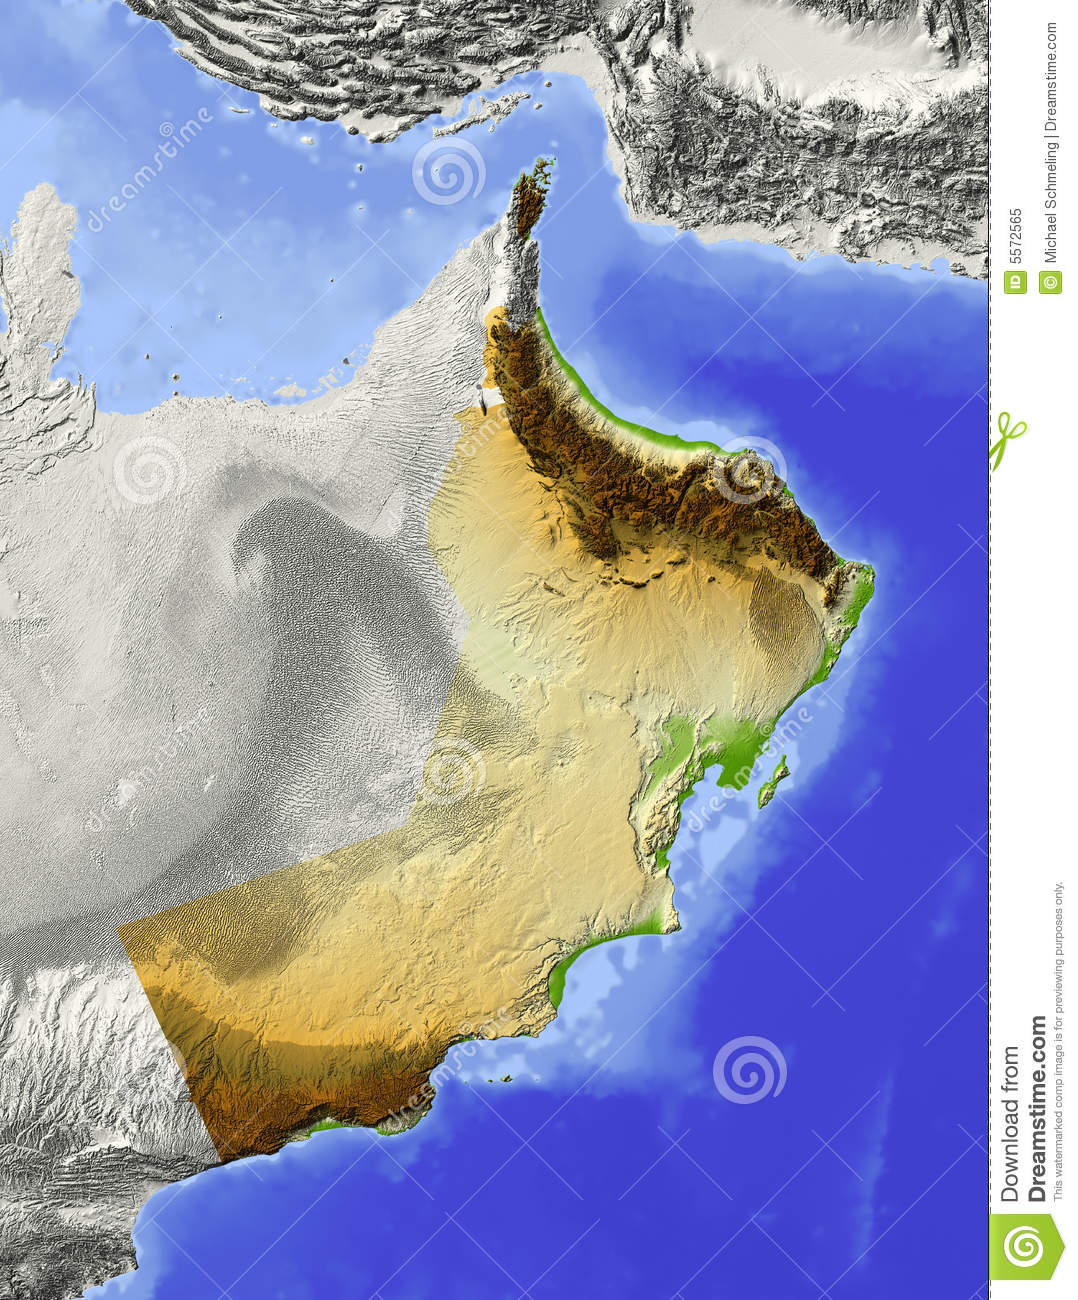 Oman Relief Map Stock Illustration Image Of Earth Relief - Oman map download